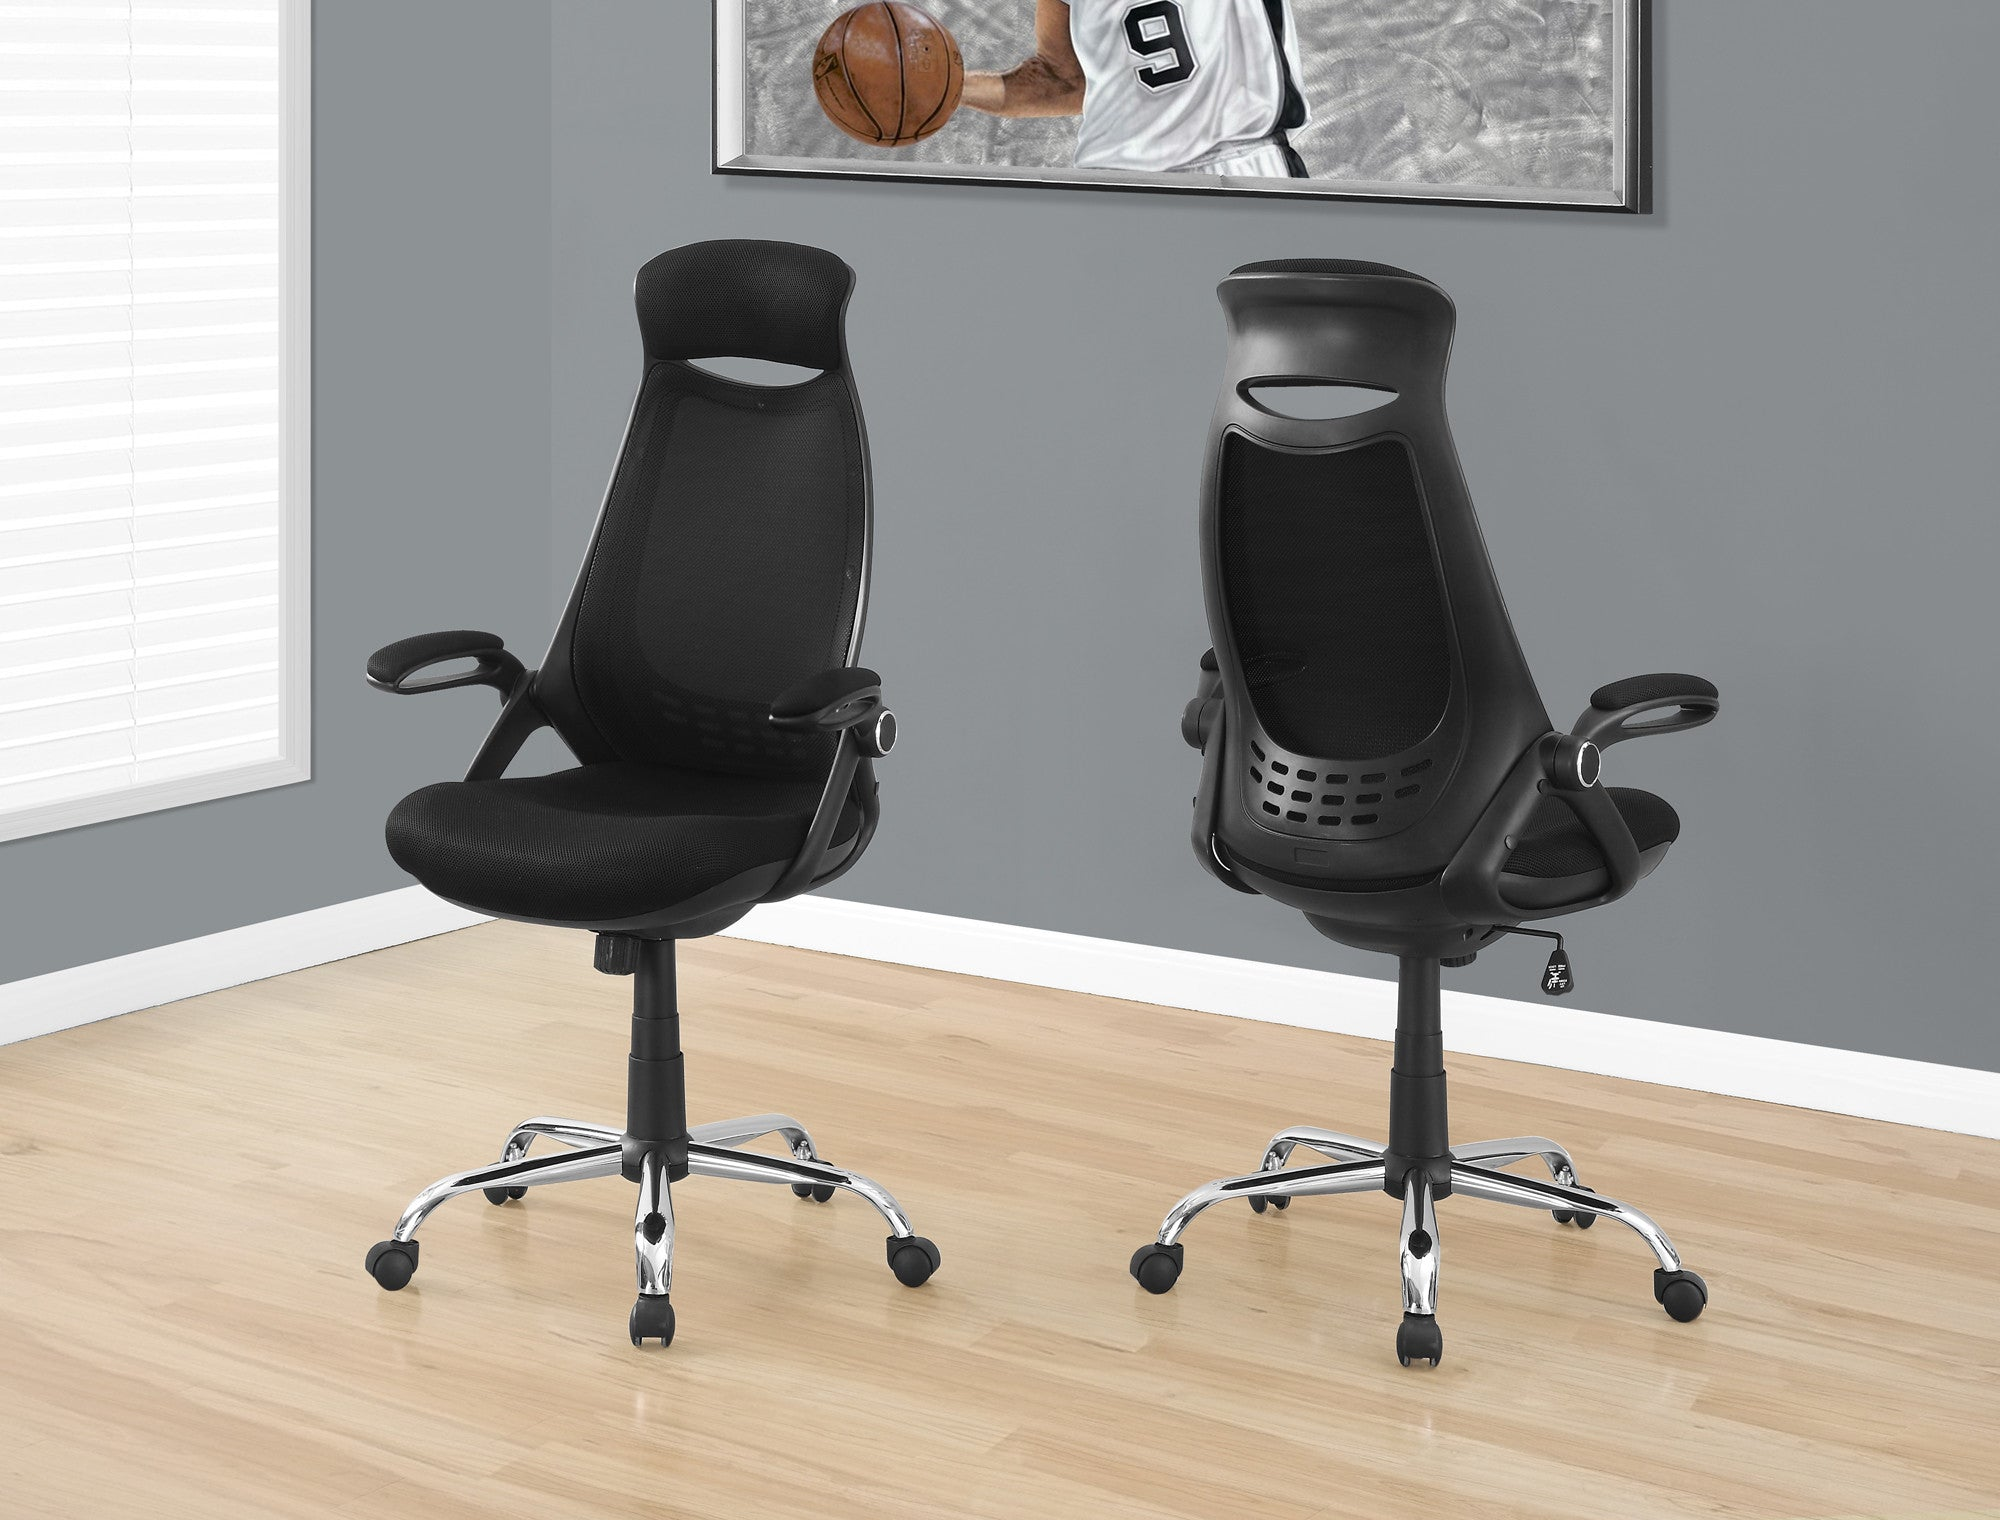 Premium Ergonomic Black Mesh Office Chair with Headrest